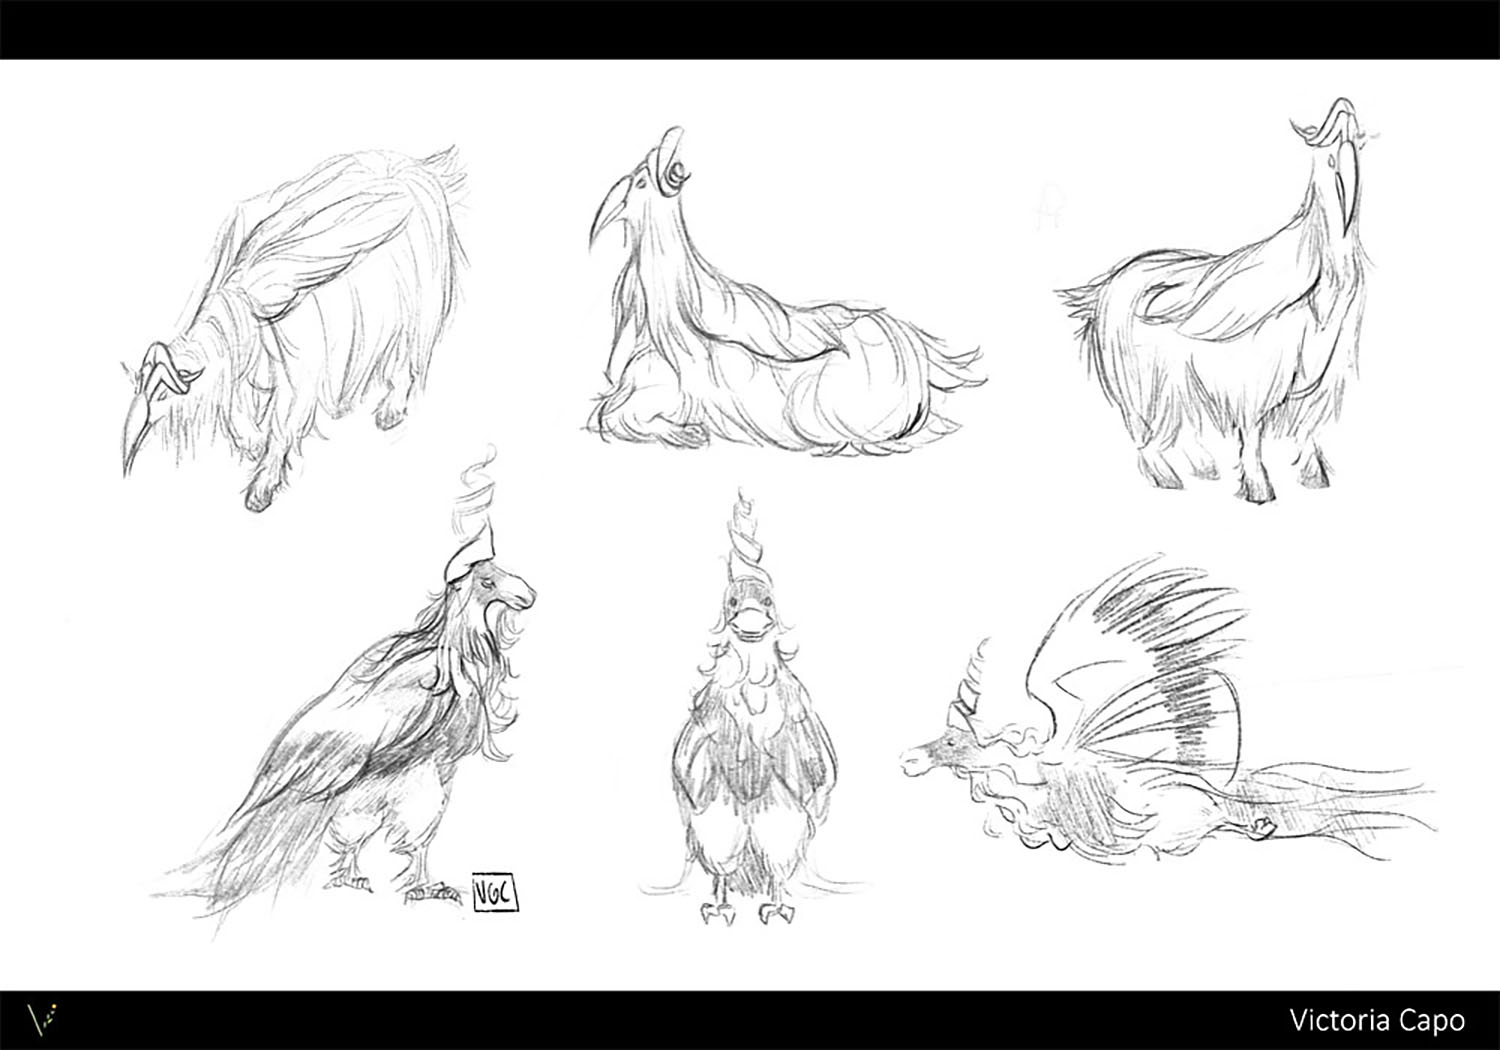 Ideation for a creature hybrid of a markhor goat and a hornbill bird.